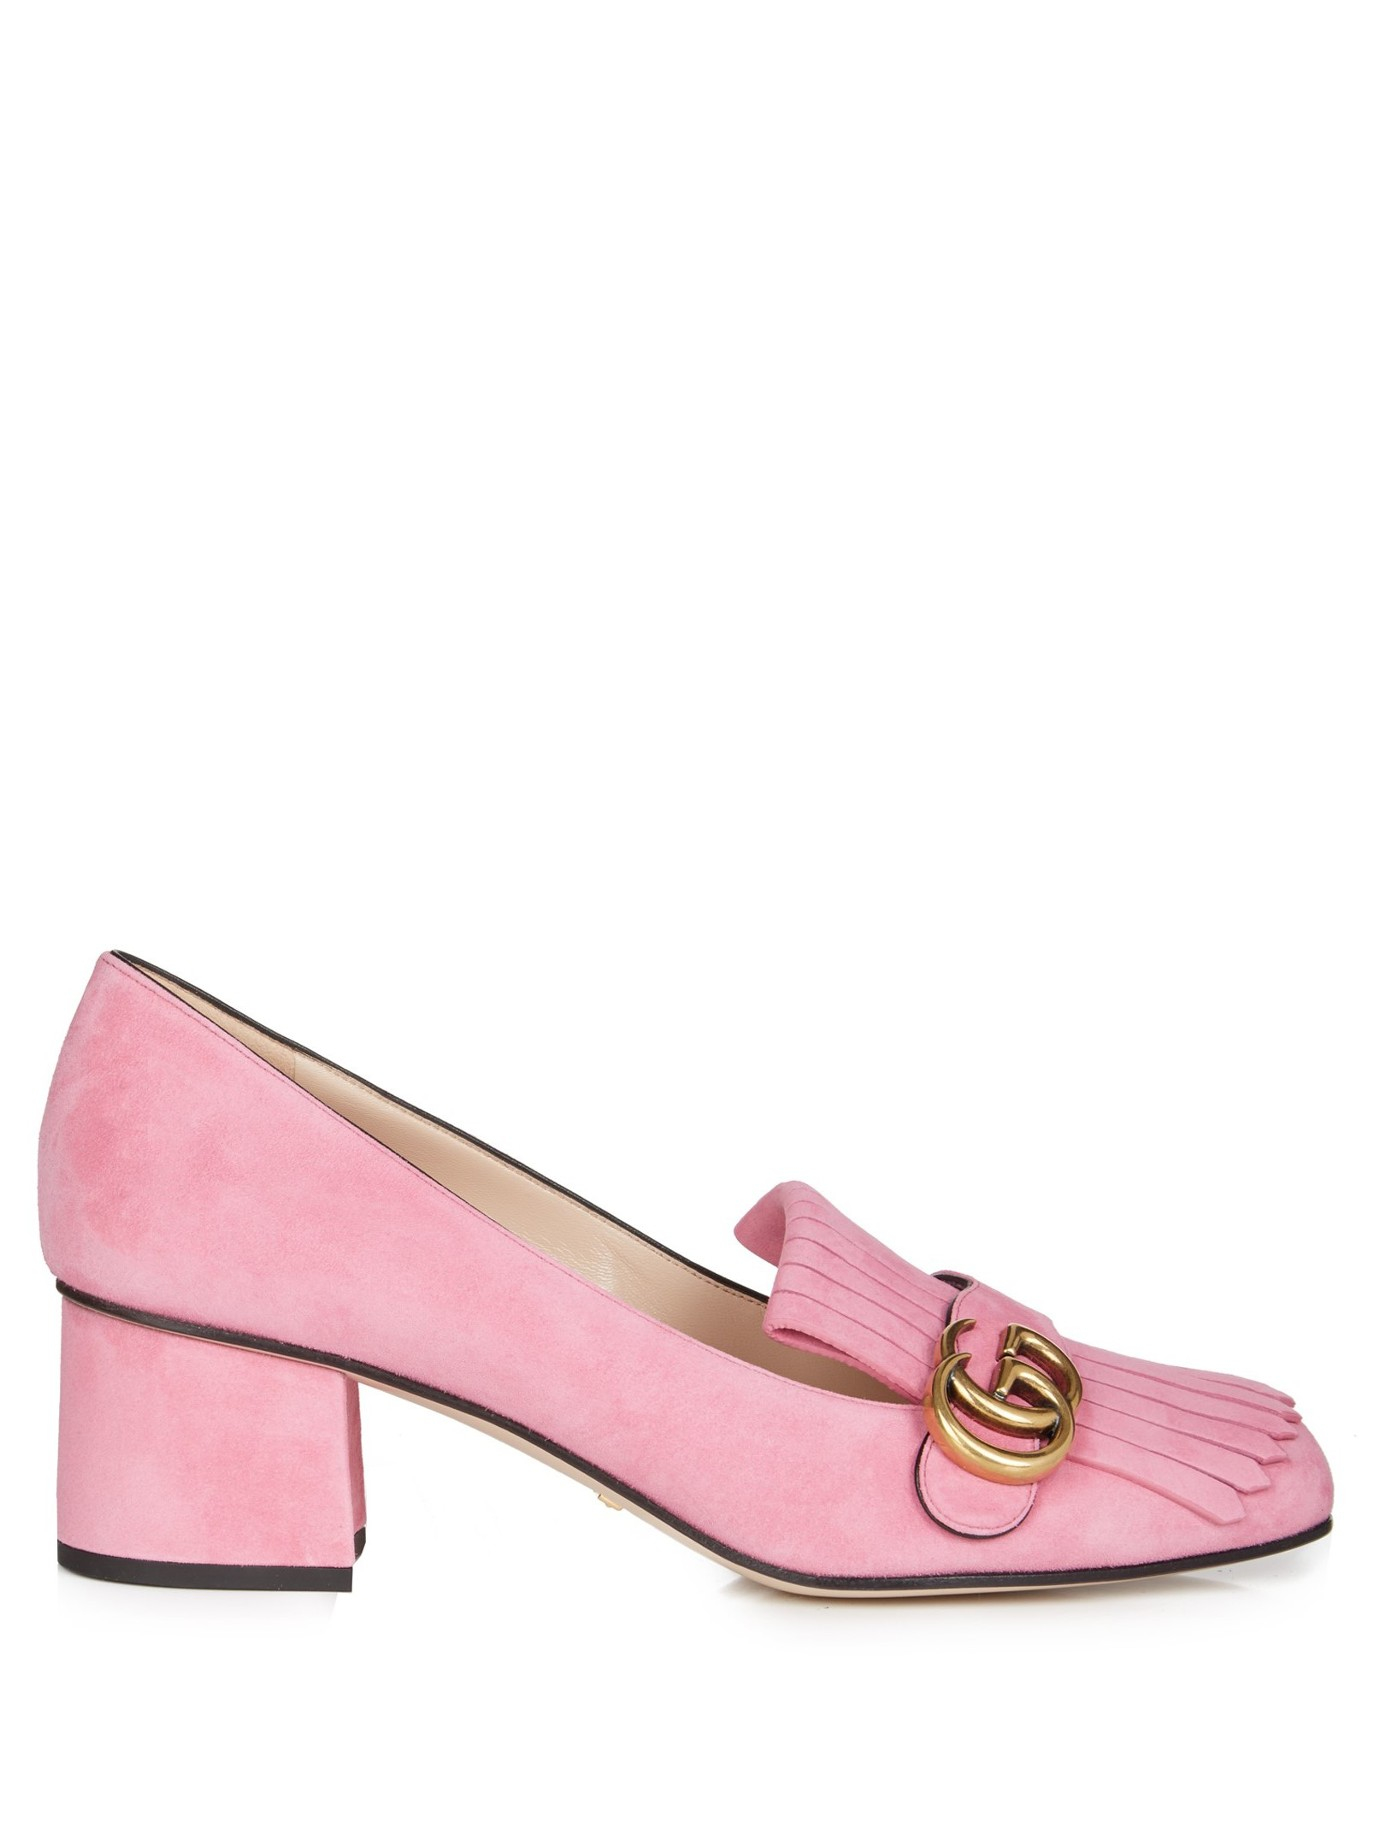 95a4643fef7 Lyst - Gucci Marmont Fringed Suede Loafers in Pink